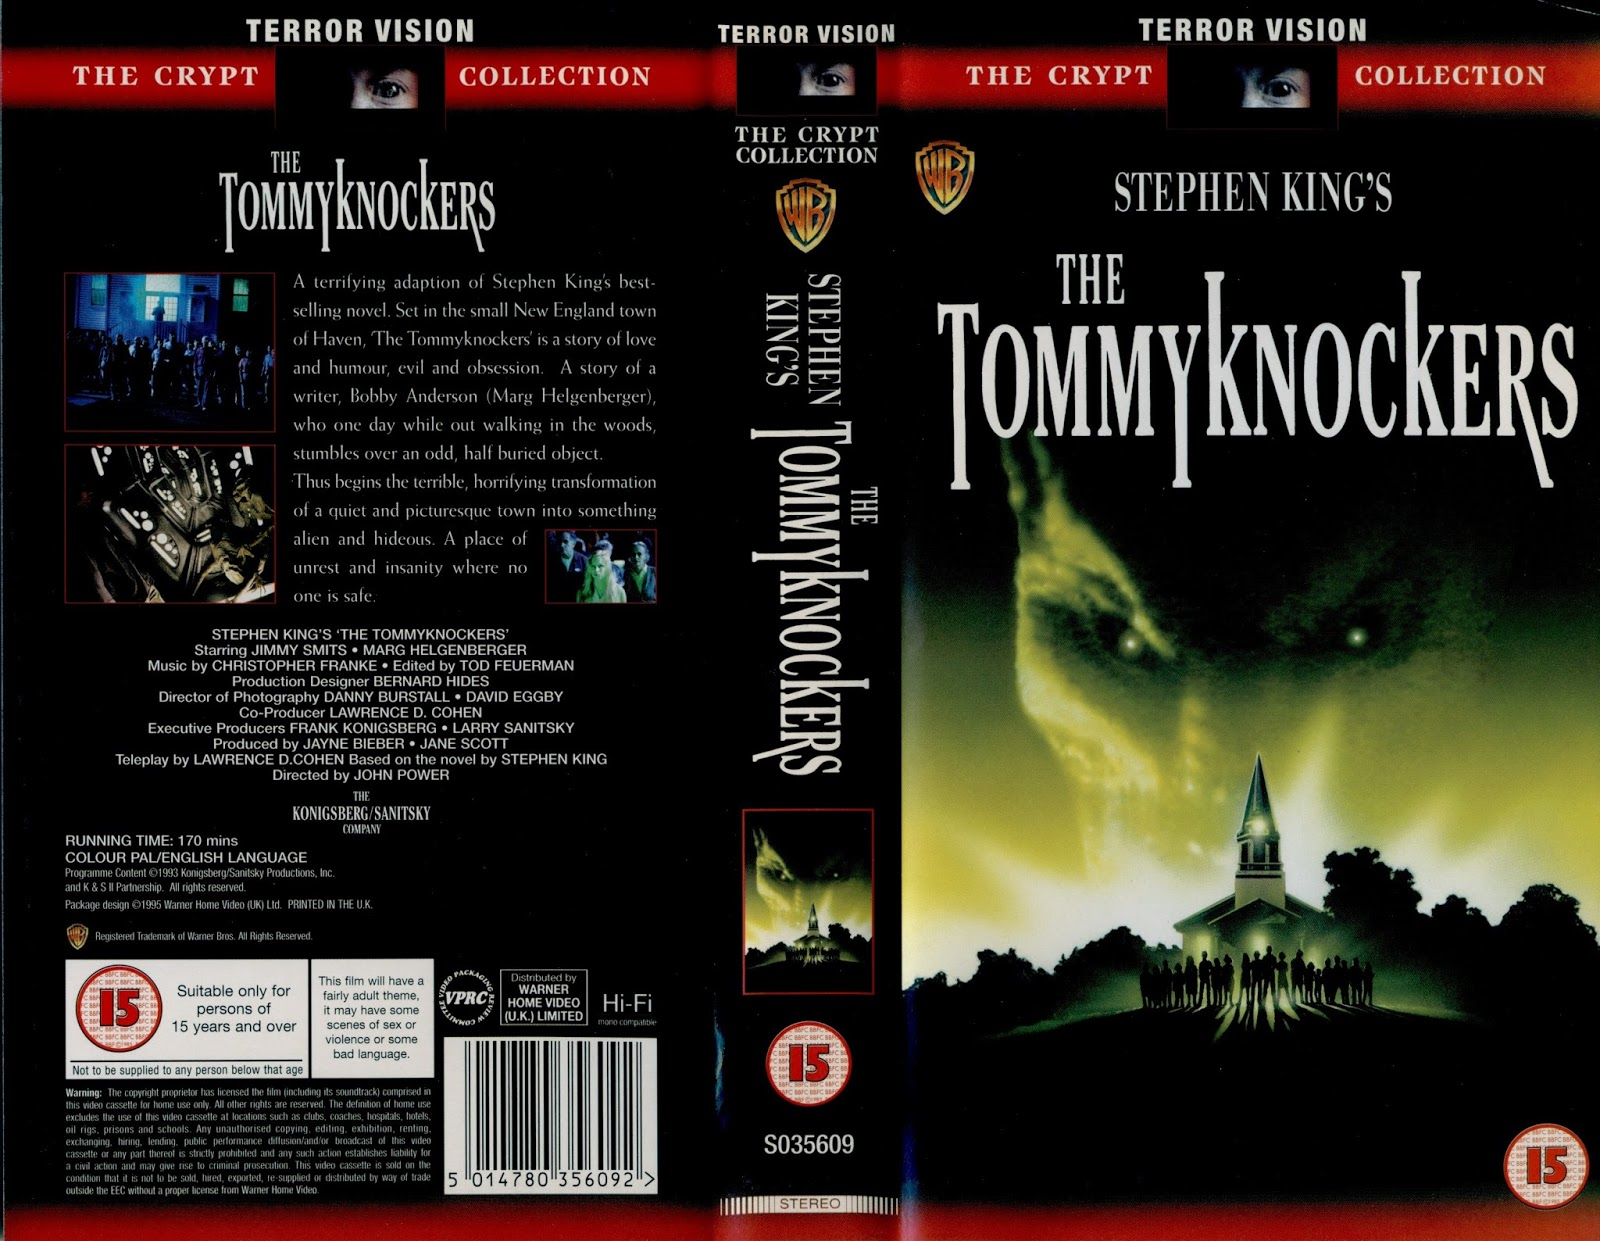 The Tommyknockers is a 1993 The Tommyknockers 1993